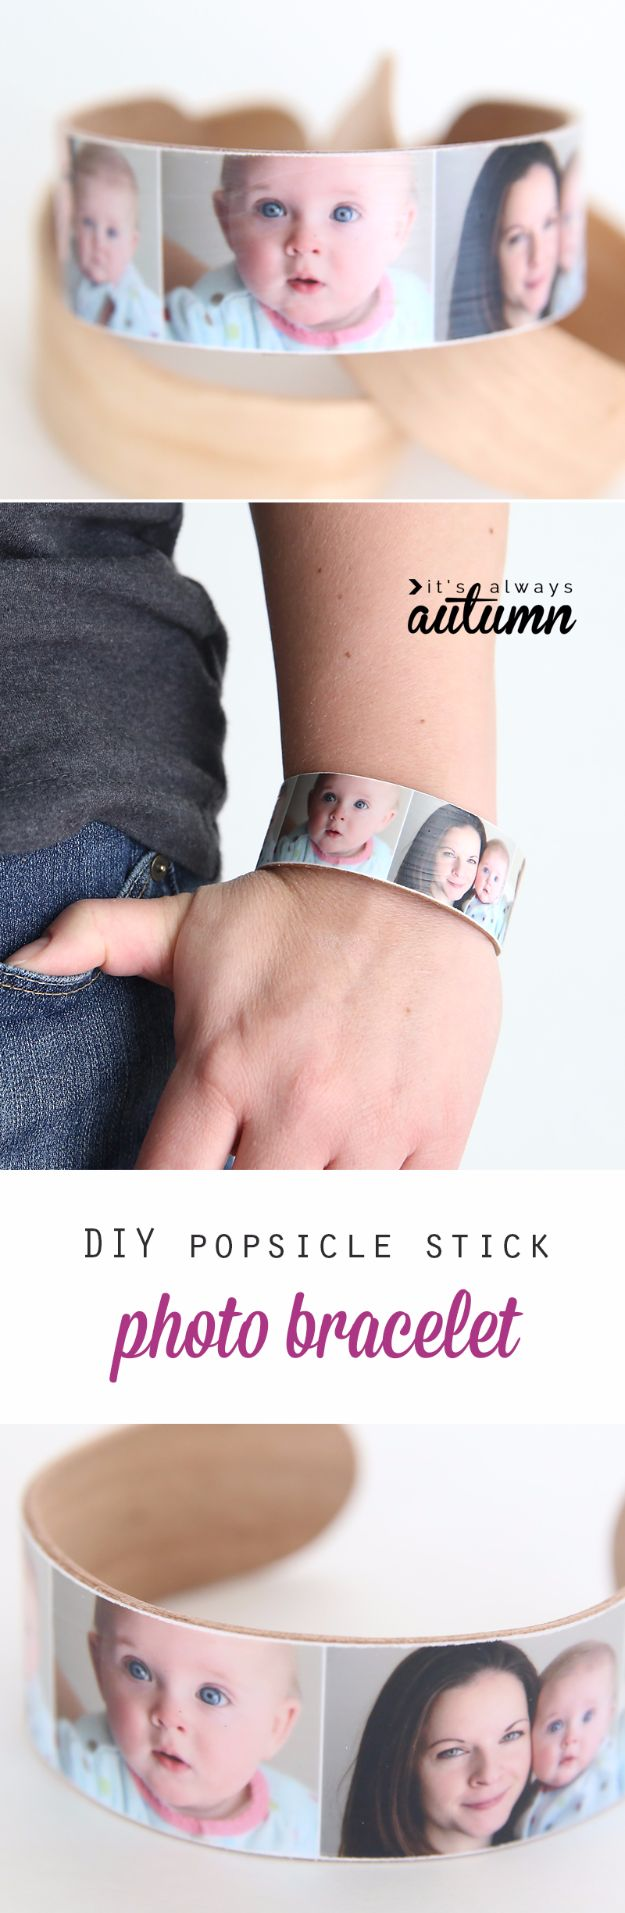 DIY Mothers Day Gift Ideas - DIY Popsicle Stick Photo Bracelet - Homemade Gifts for Moms - Crafts and Do It Yourself Home Decor, Accessories and Fashion To Make For Mom - Mothers Love Handmade Presents on Mother's Day - DIY Projects and Crafts by DIY JOY